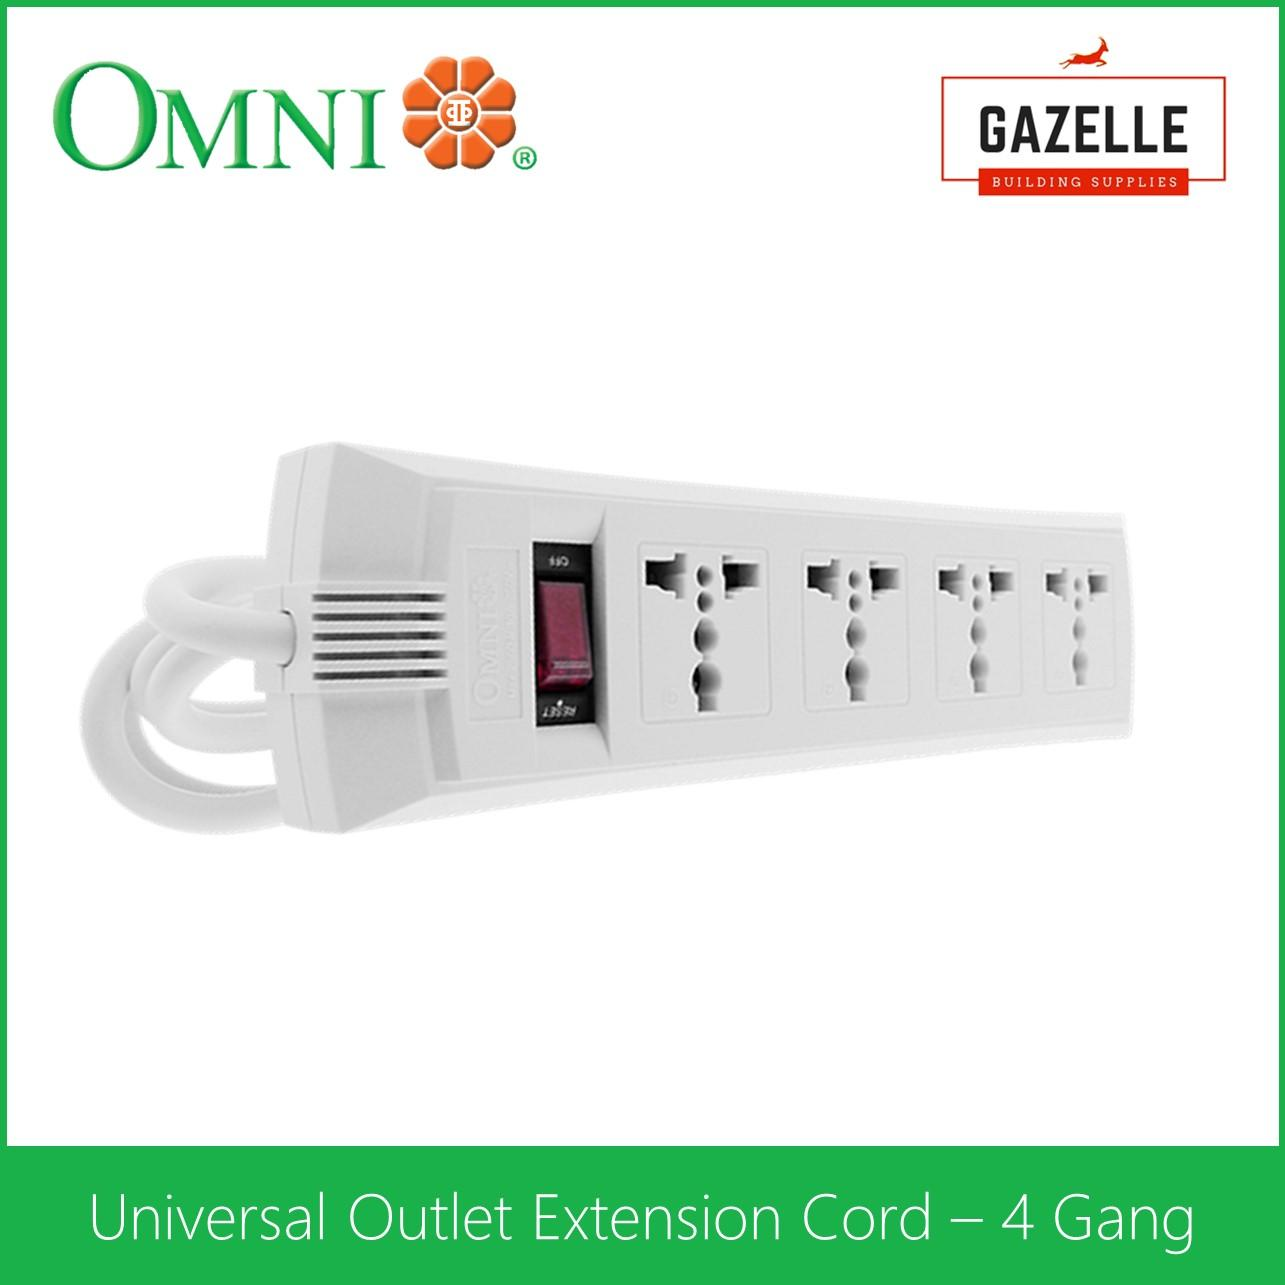 Omni Universal Outlet Extension Cord 4 Gang With Switch Weu 104 Help Wiring Up A Iec320 C14 Socket Electronics Forum Circuits